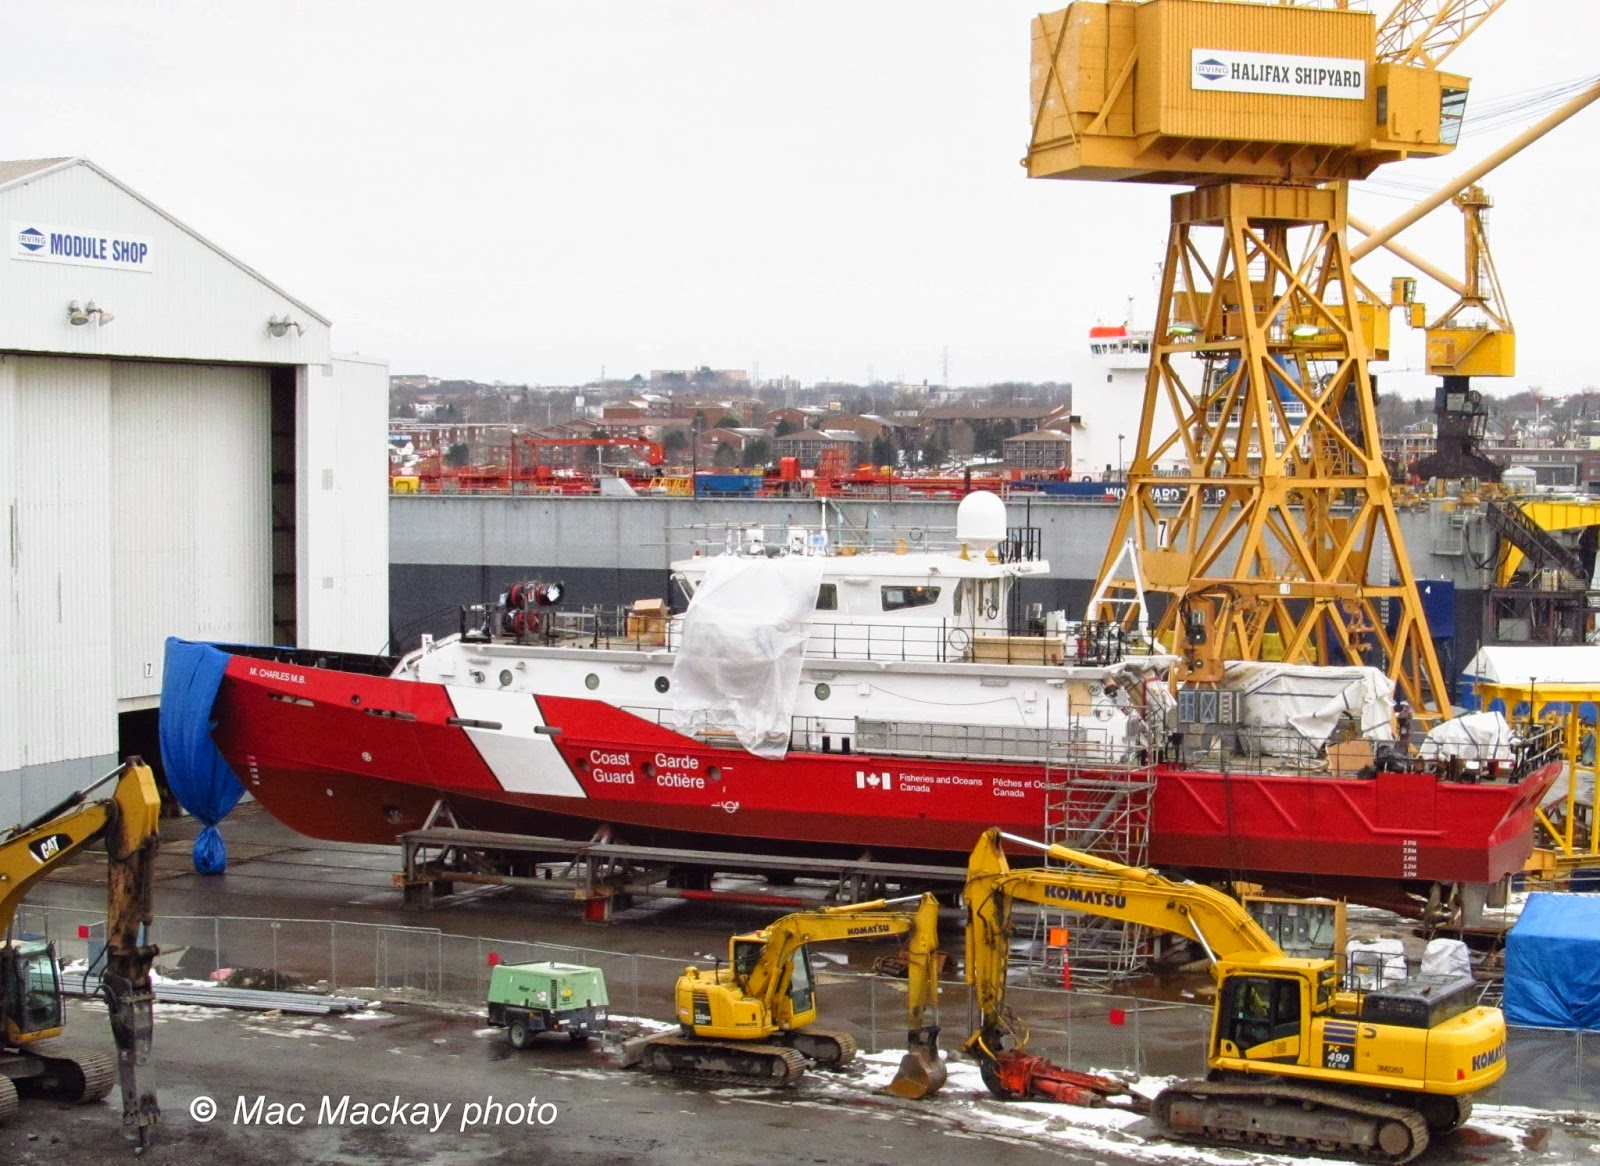 Crib for sale halifax - M Charles M B Sits On A Crib Work Frame Just Outside The Module Ship Construction Machinery In The Foreground Is Working On Demolition Of The Old Pipe